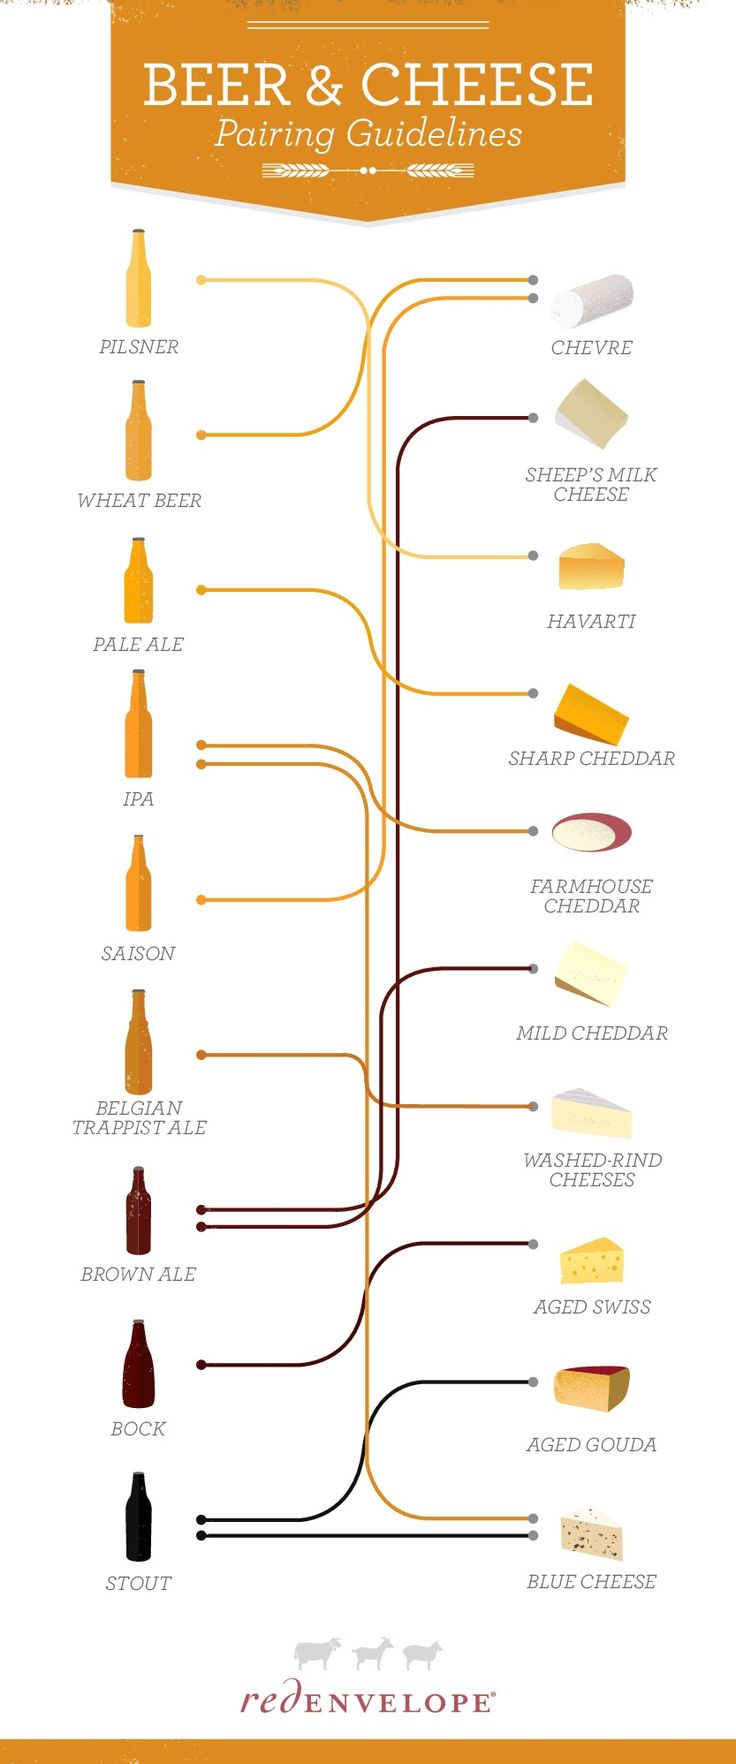 Beer And Cheese Pairing Guide   #Infographic #Beer #Cheese #Food